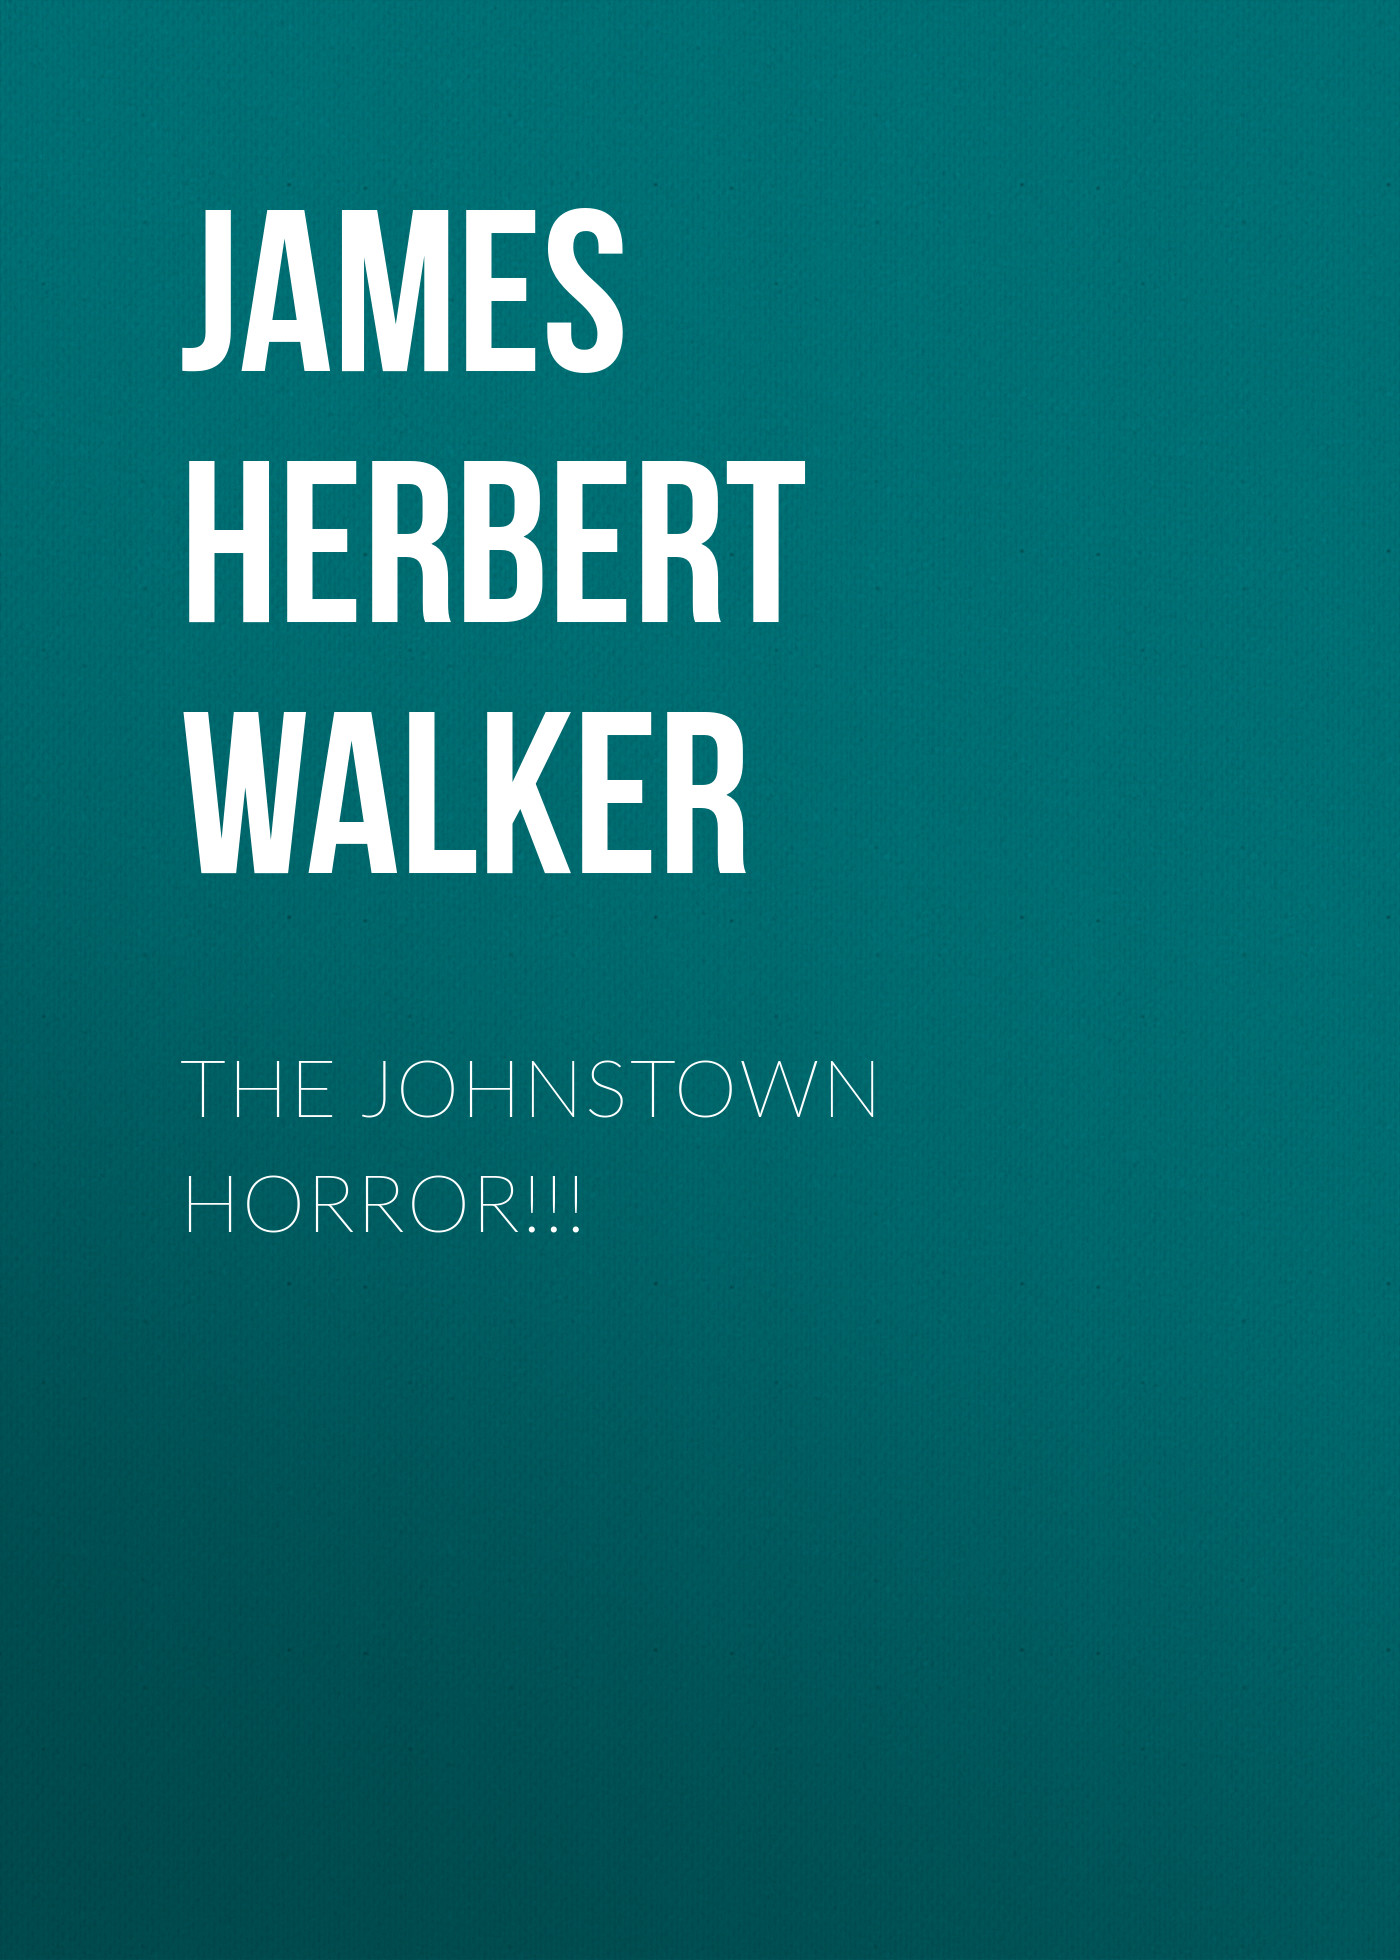 James Herbert Walker The Johnstown Horror!!!